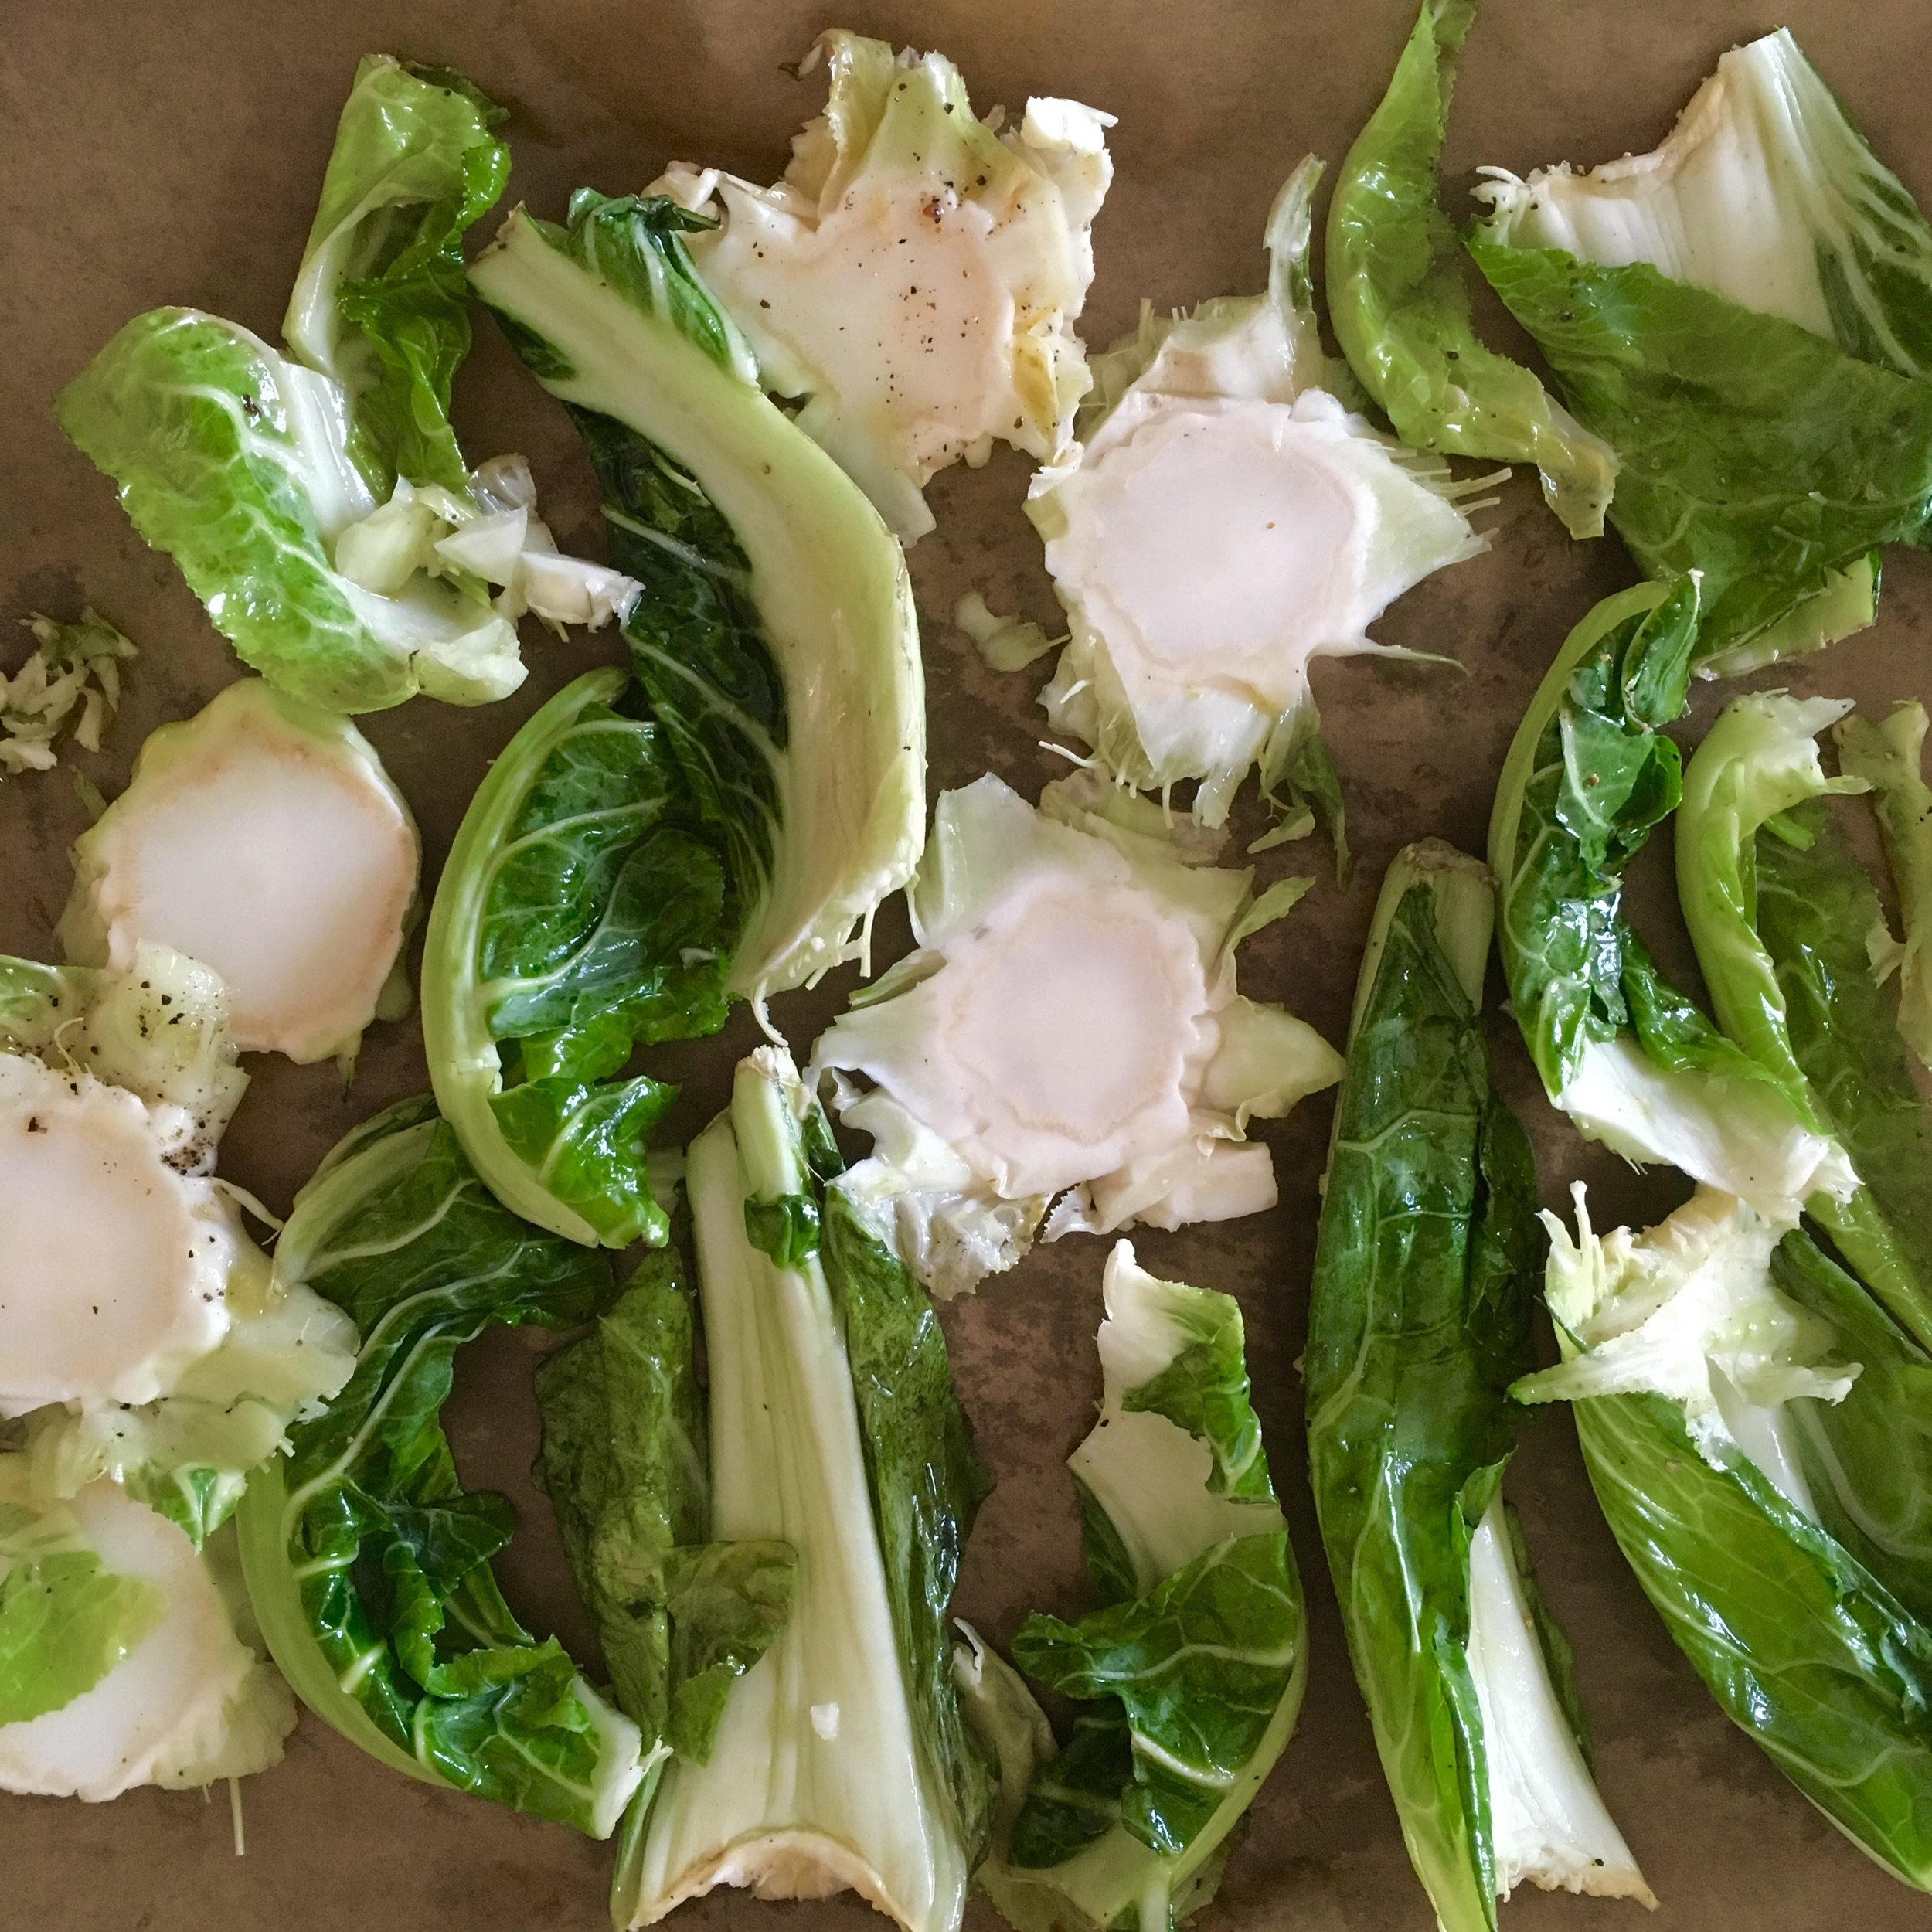 Leaves and stems tossed in some olive oil and about to be roasted in the oven. Looking better already…